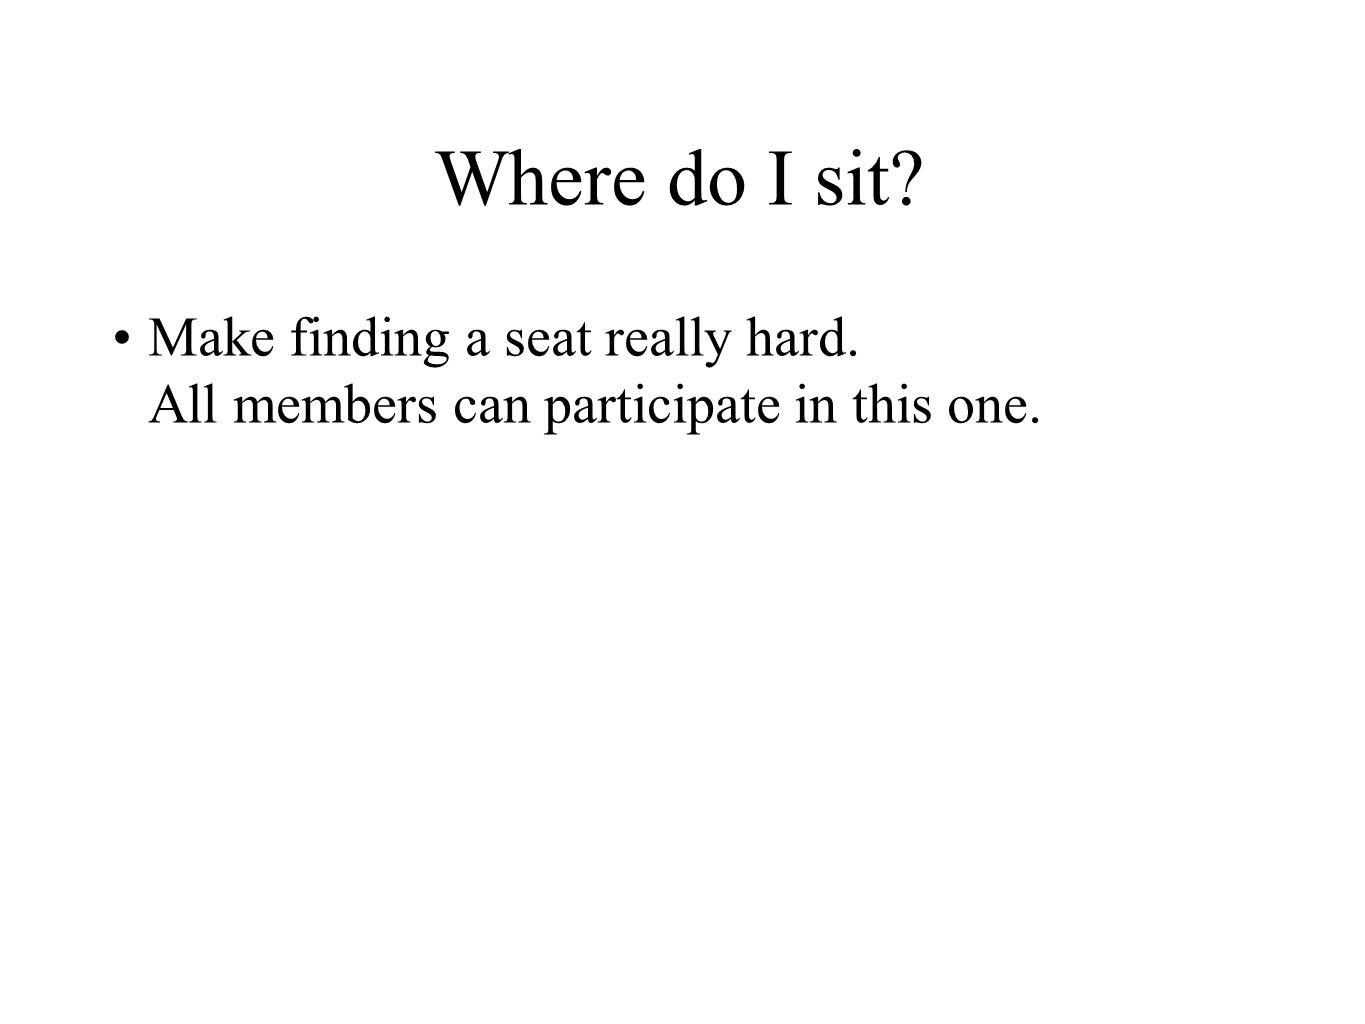 Make finding a seat really hard. All members can participate in this one.